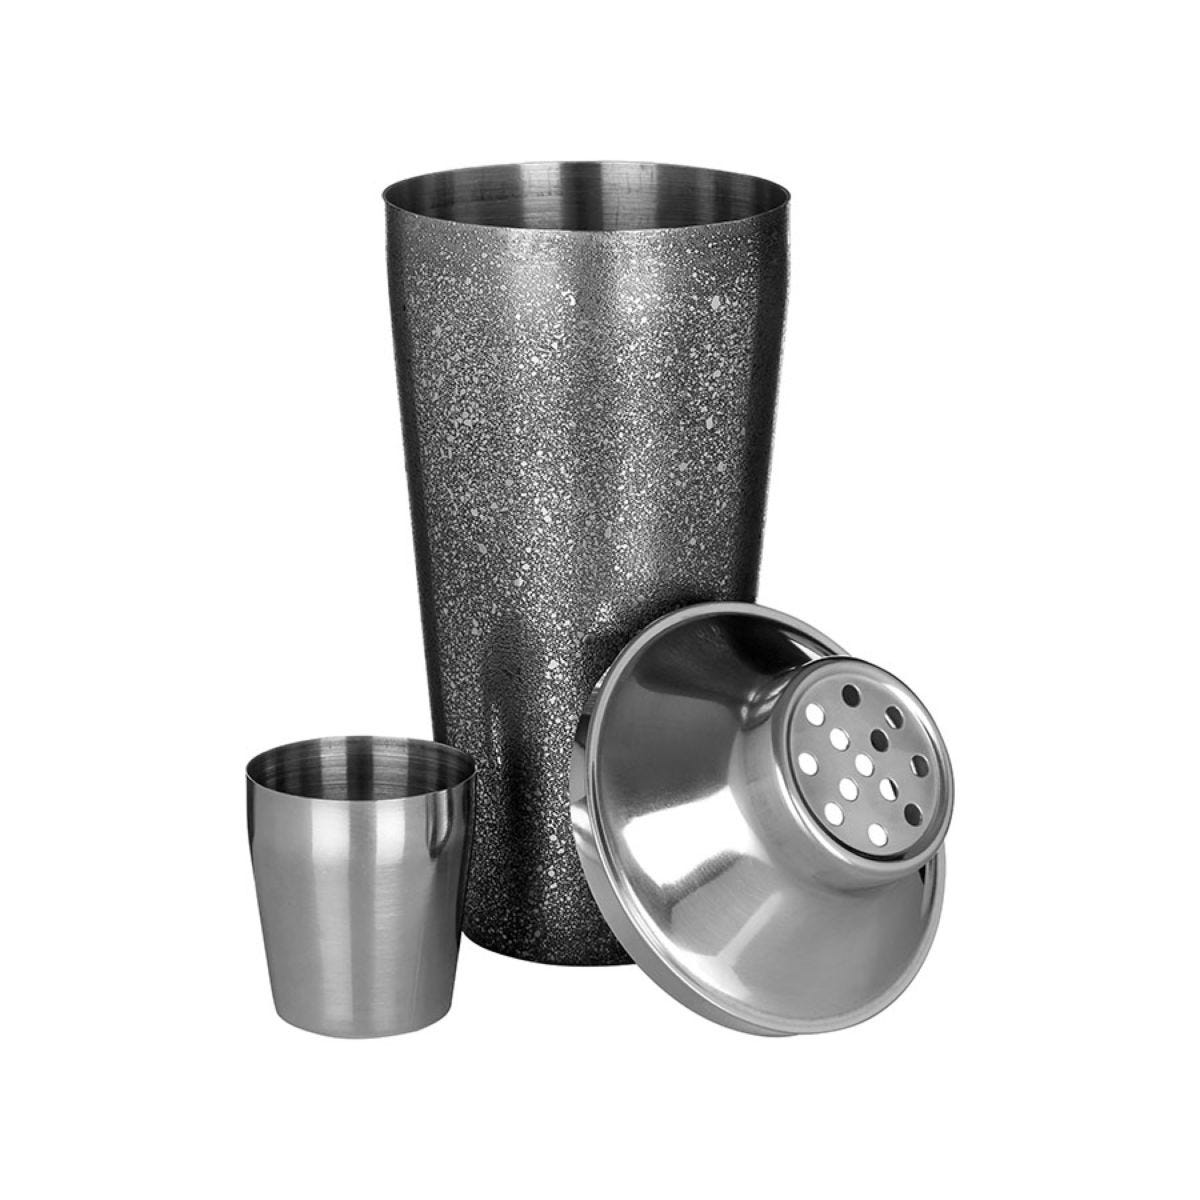 Premier Housewares Cocktail Shaker - Stainless Steel